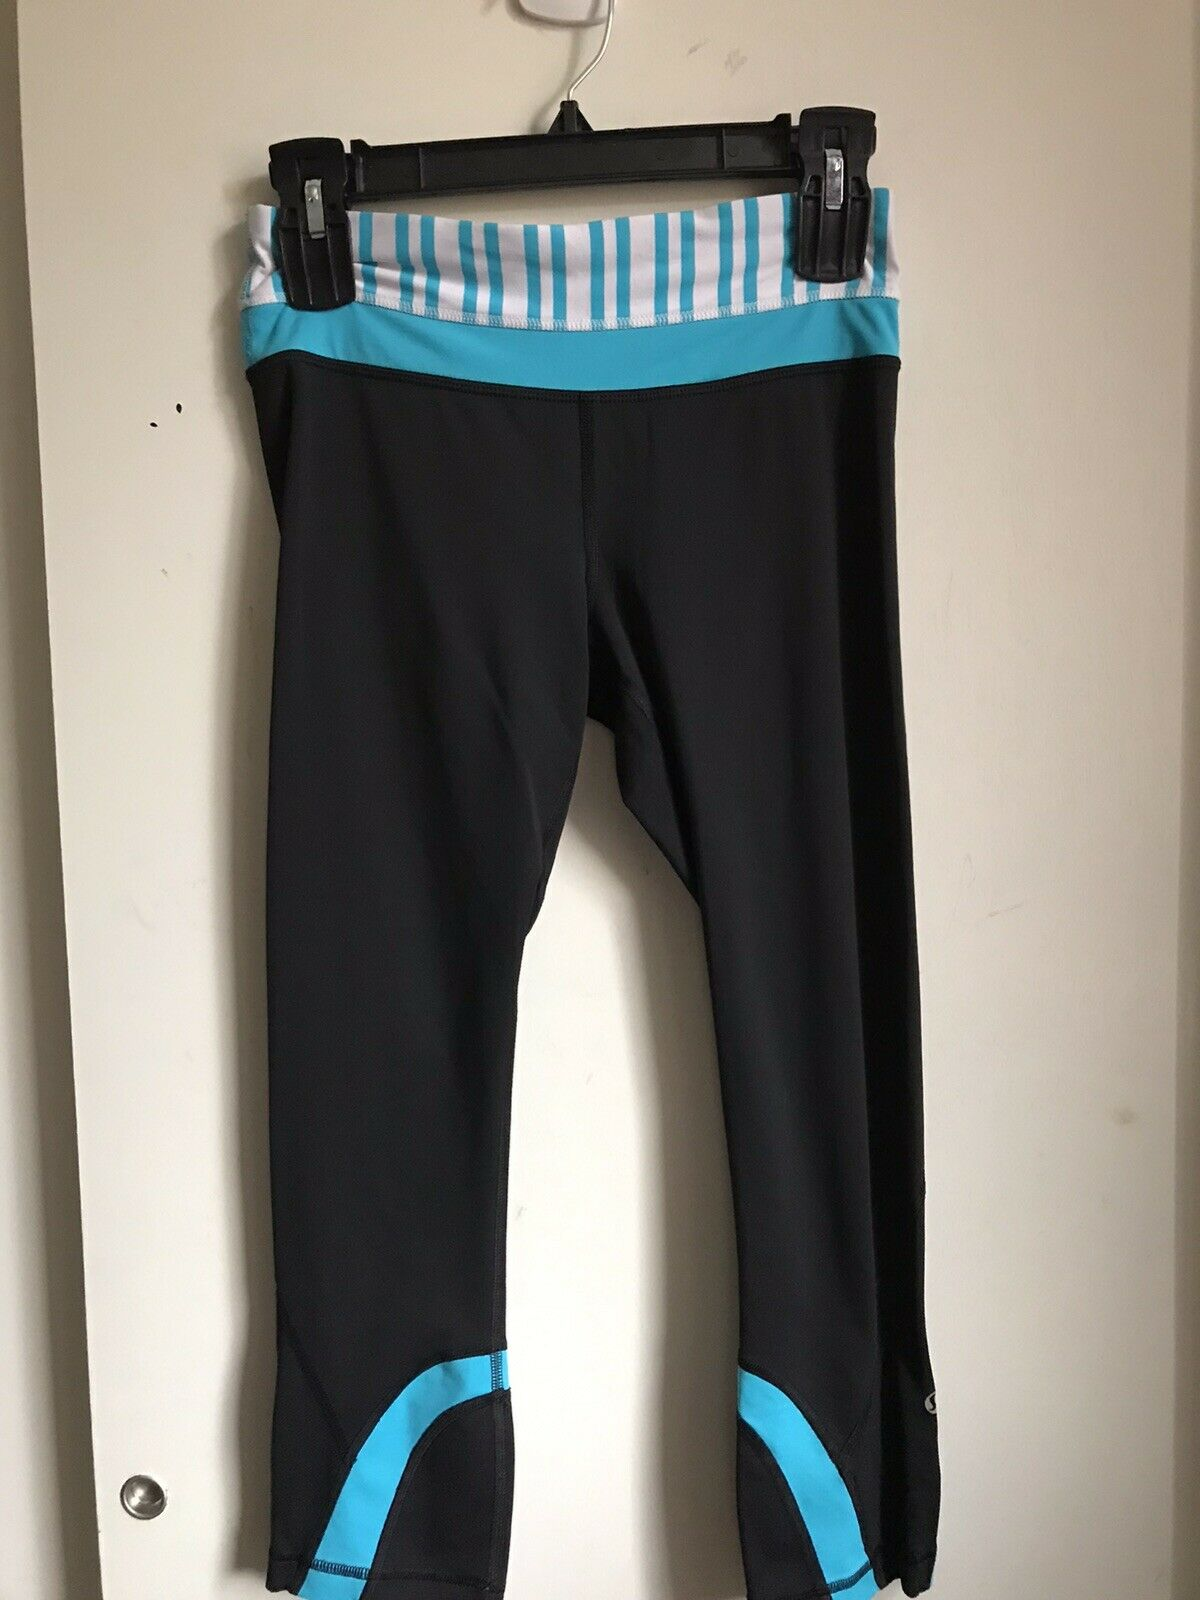 Lululemon Capri Yoga Pants Sz 6